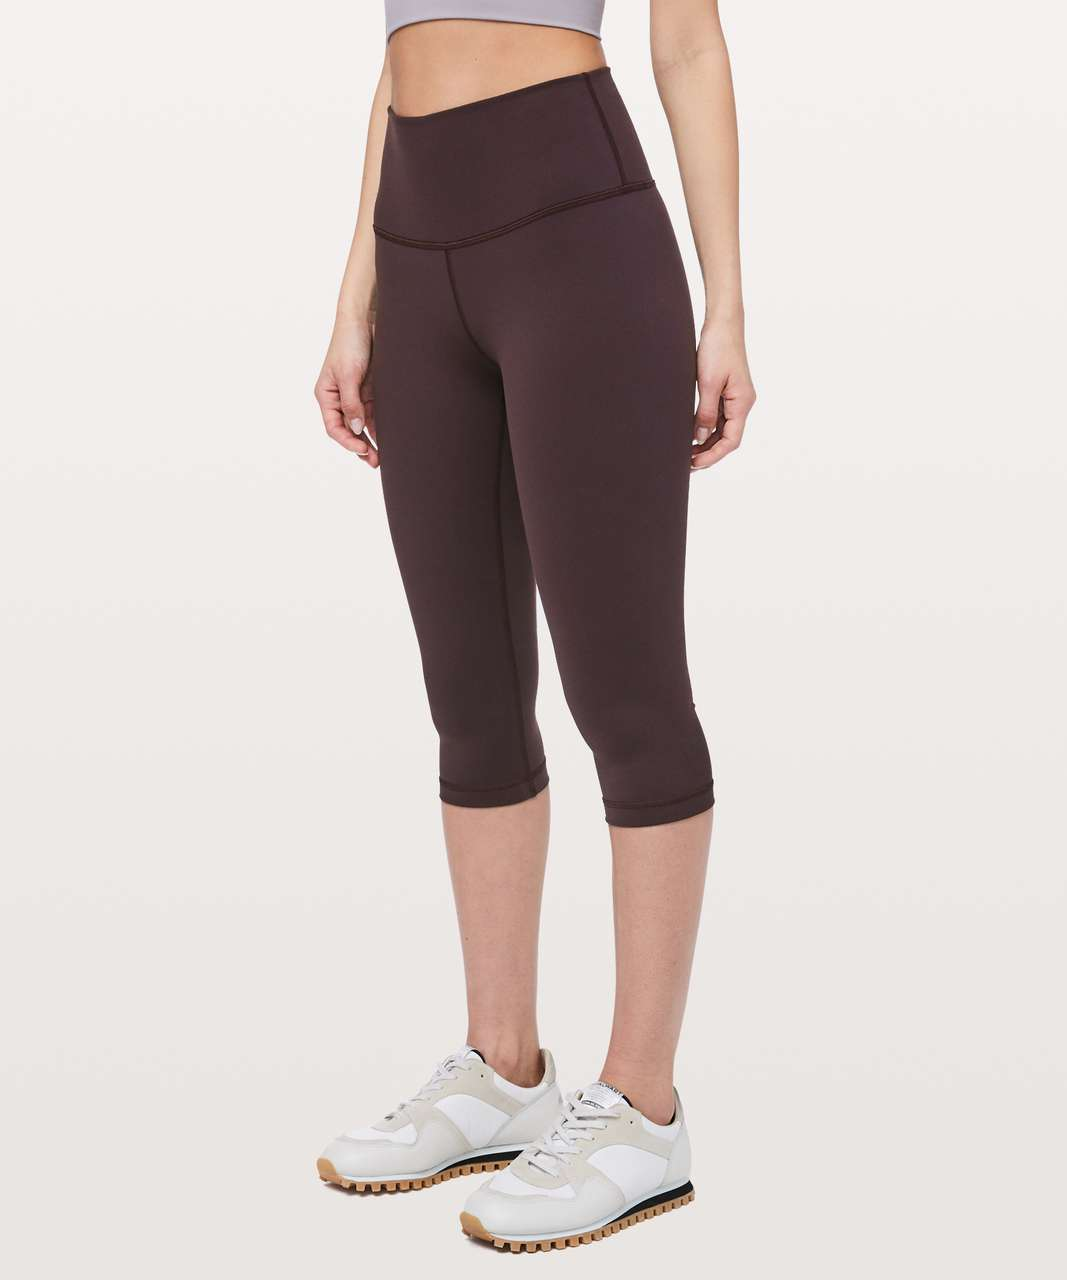 "Lululemon Wunder Under High-Rise 1/2 Tight Full-On Luon 17"" - Plum Shadow"